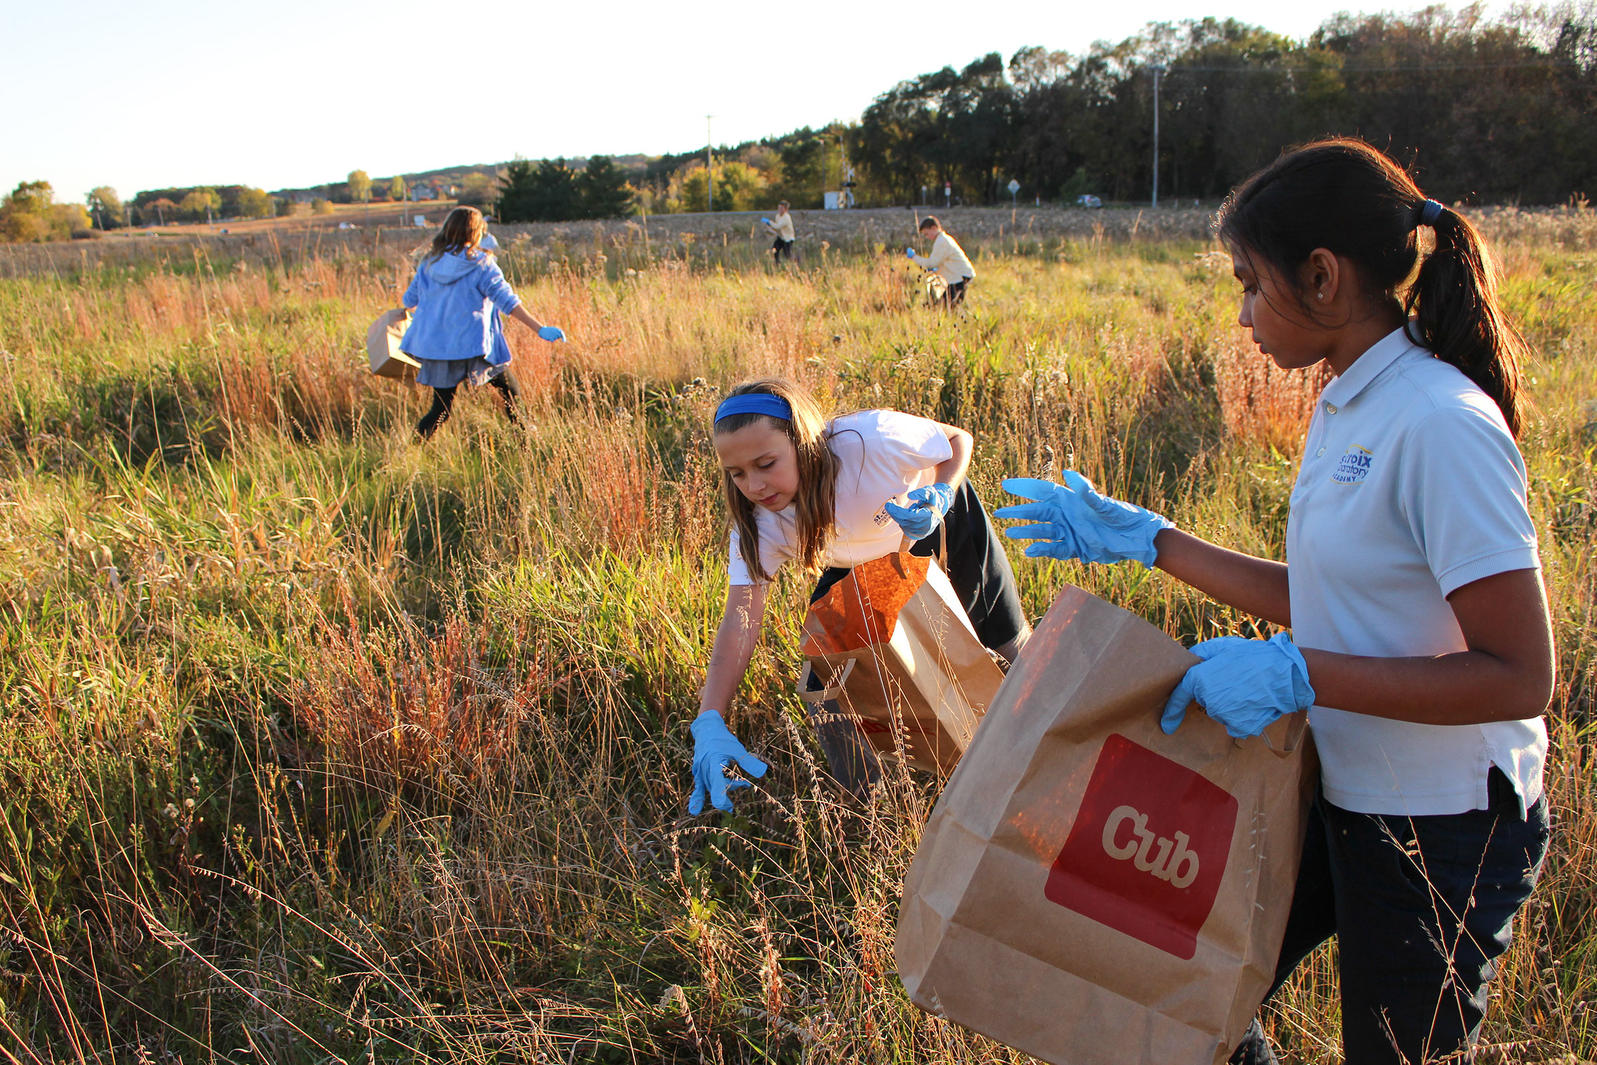 St. Croix Preparatory School students gather native plant seeds for a prairie restoration in Minnesota. Ashley J. Peters